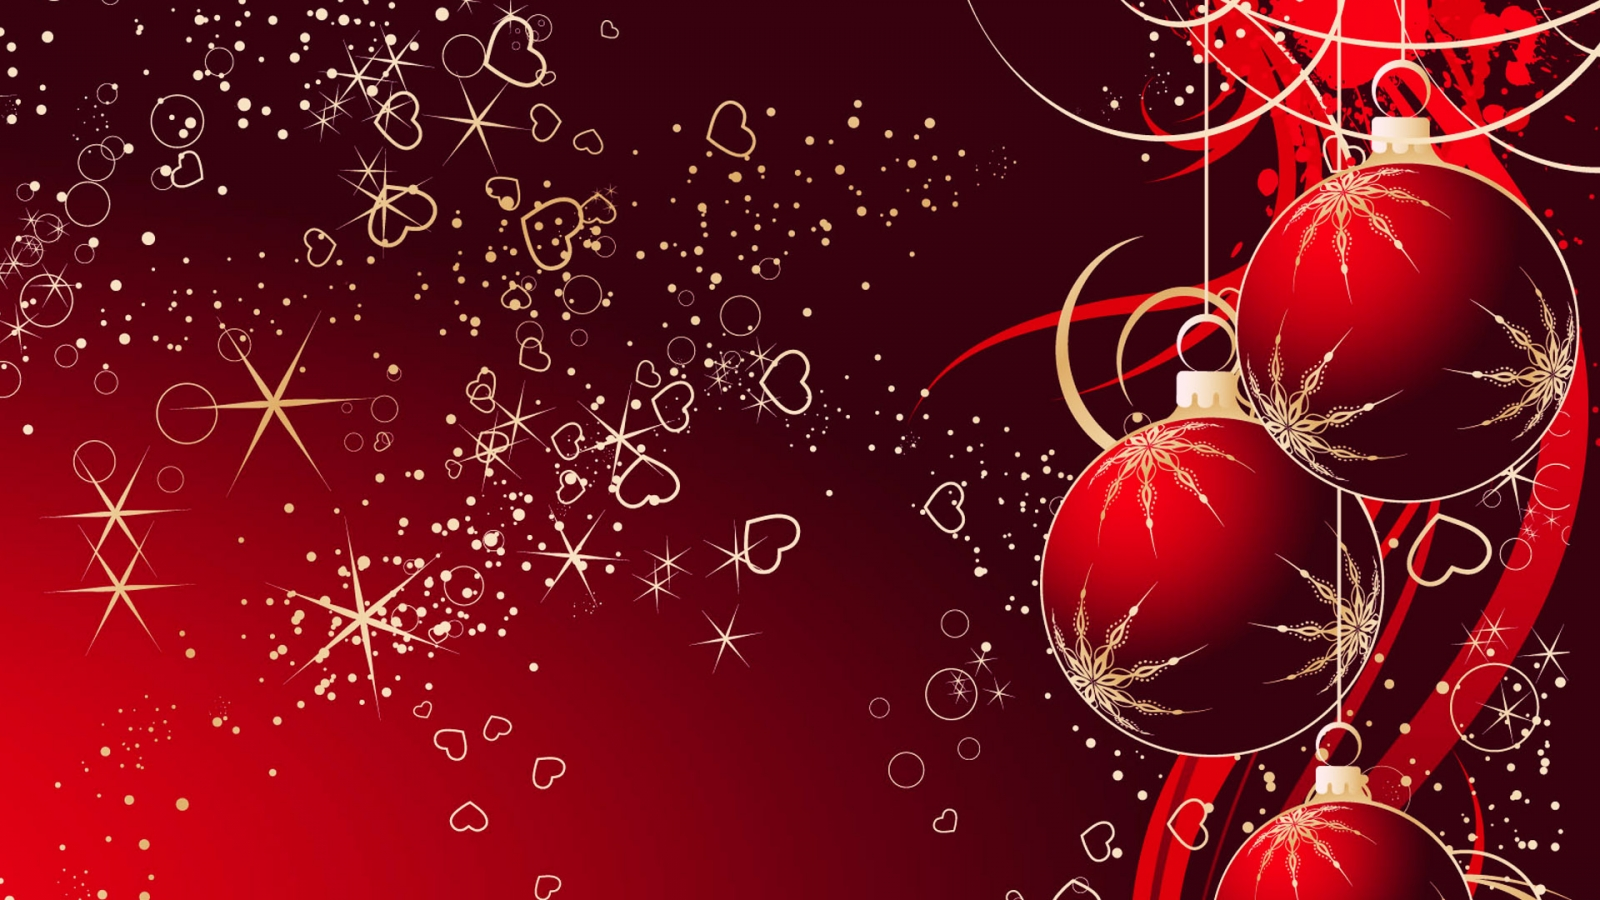 wallpaper christmas wallpapers - photo #9